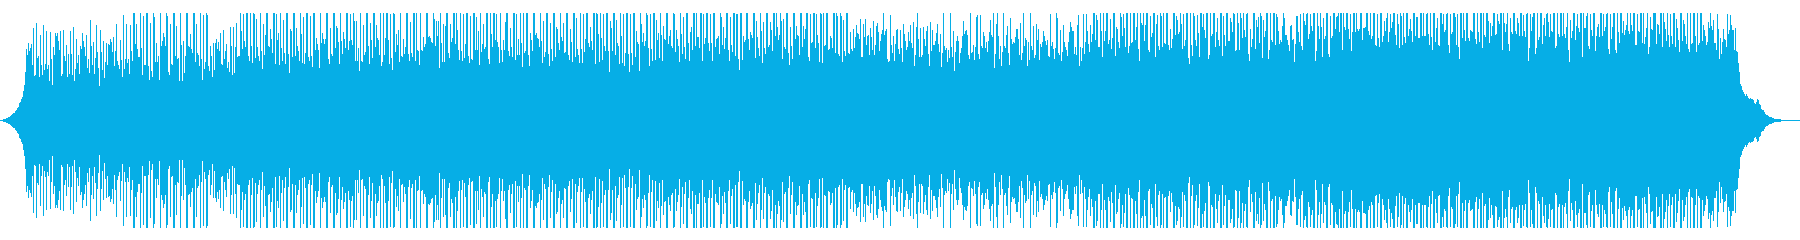 Conference's reproduced waveform